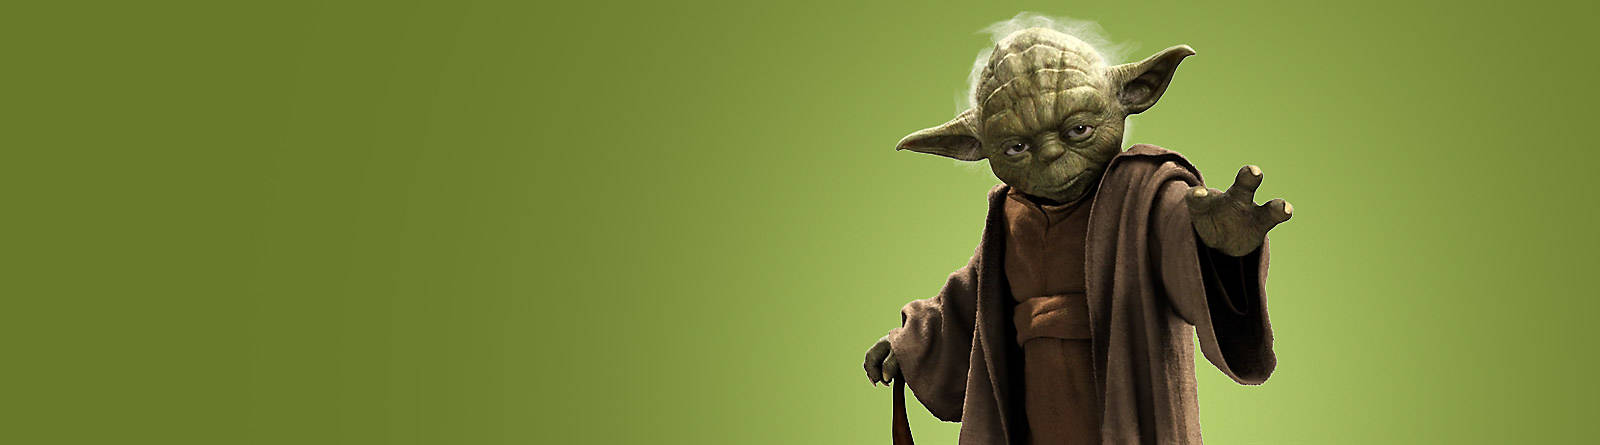 Yoda Feel the force with our Yoda from Star Wars toys, figurines, collectibles and more